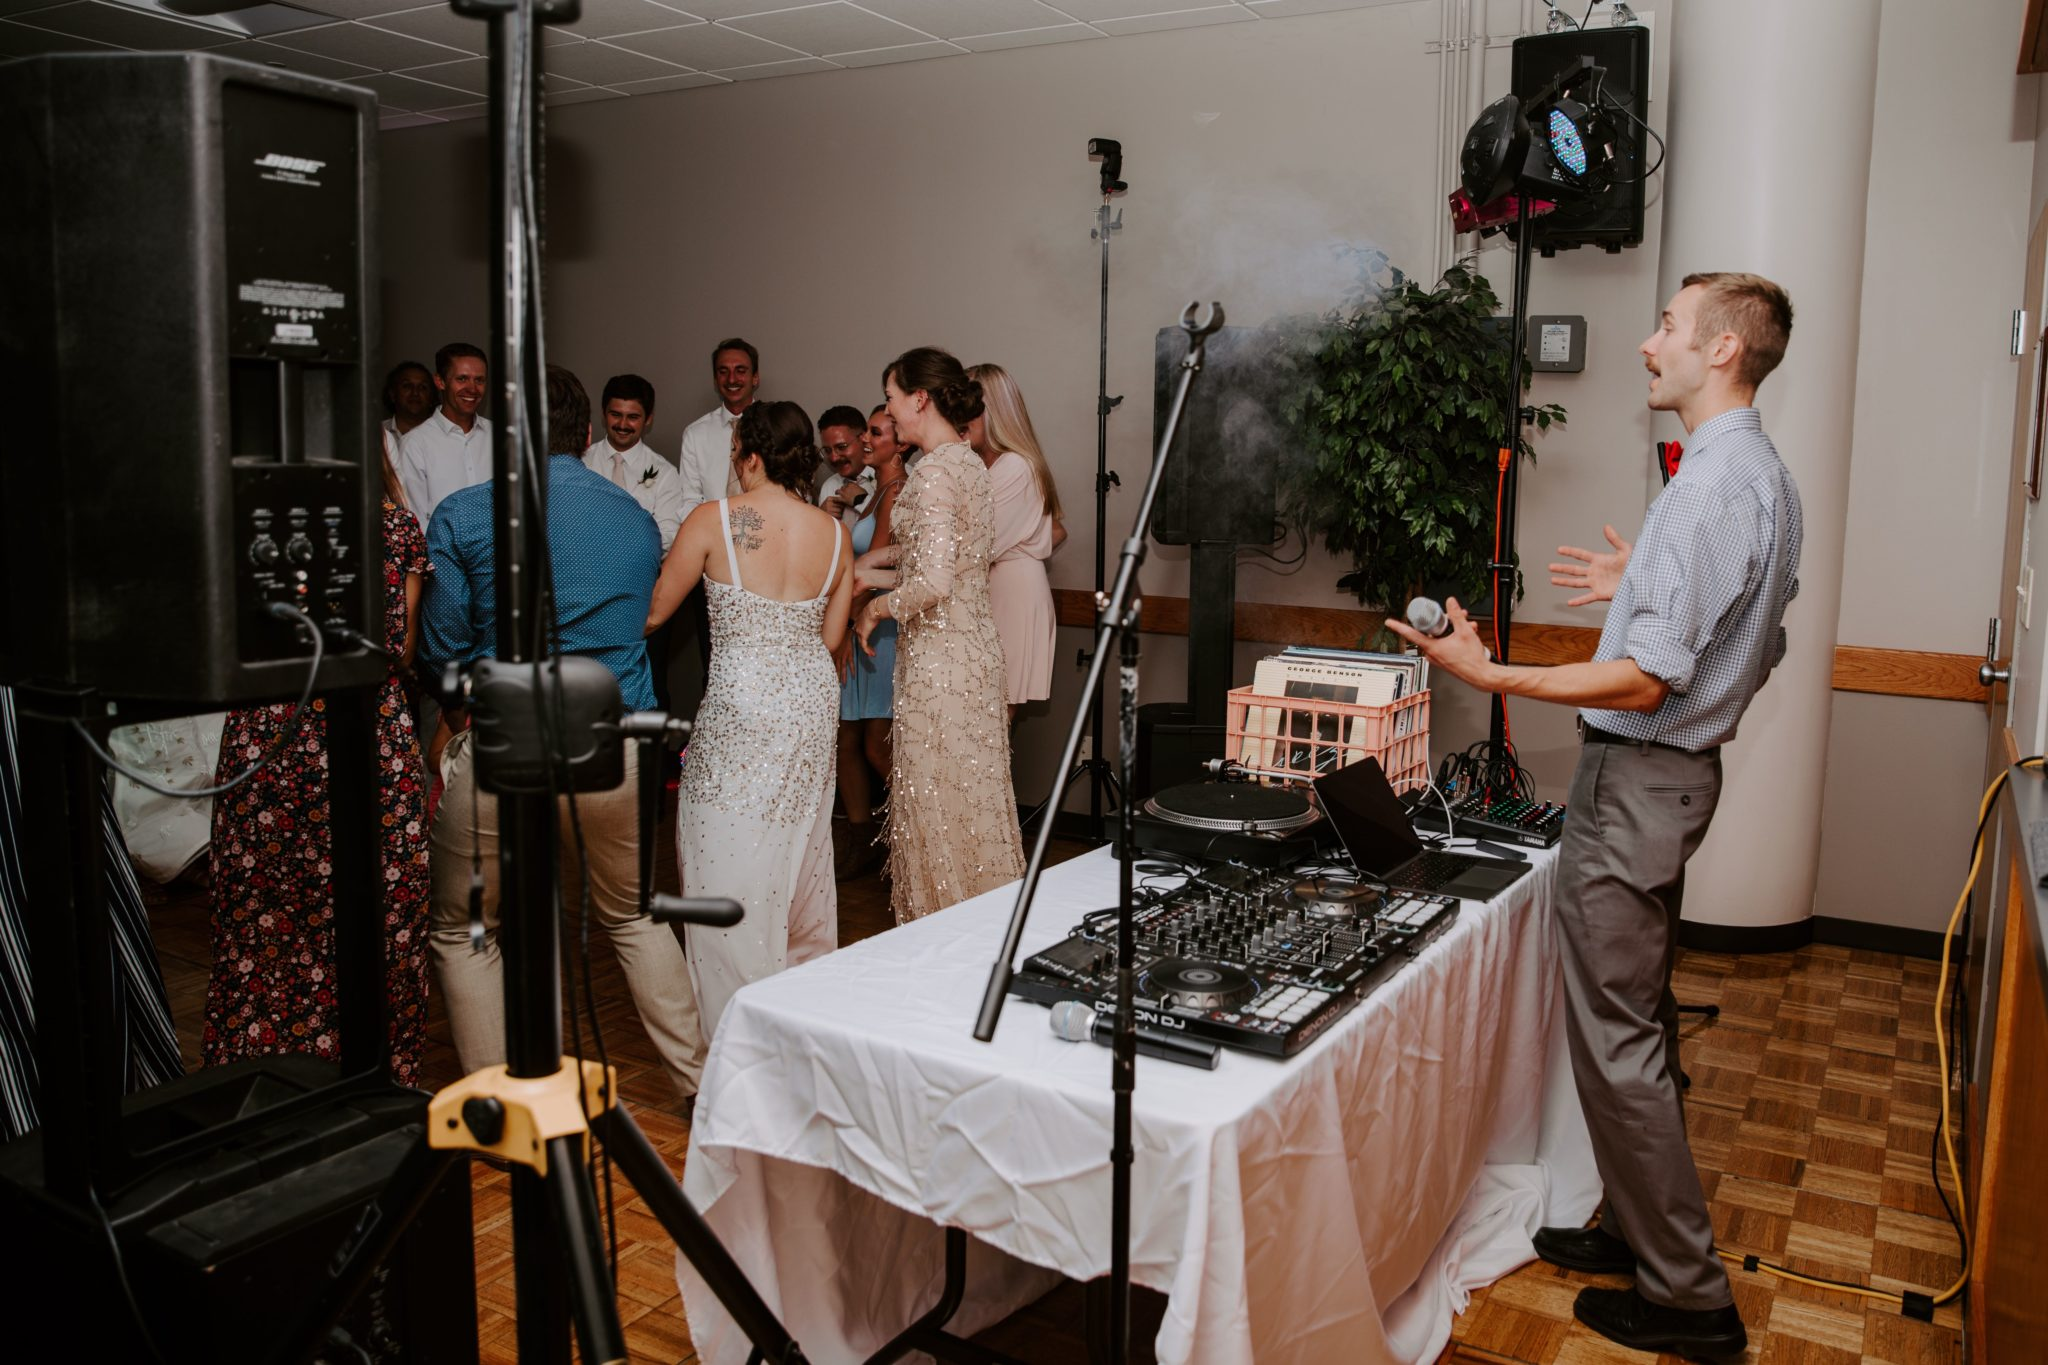 Wedding Band or DJ?